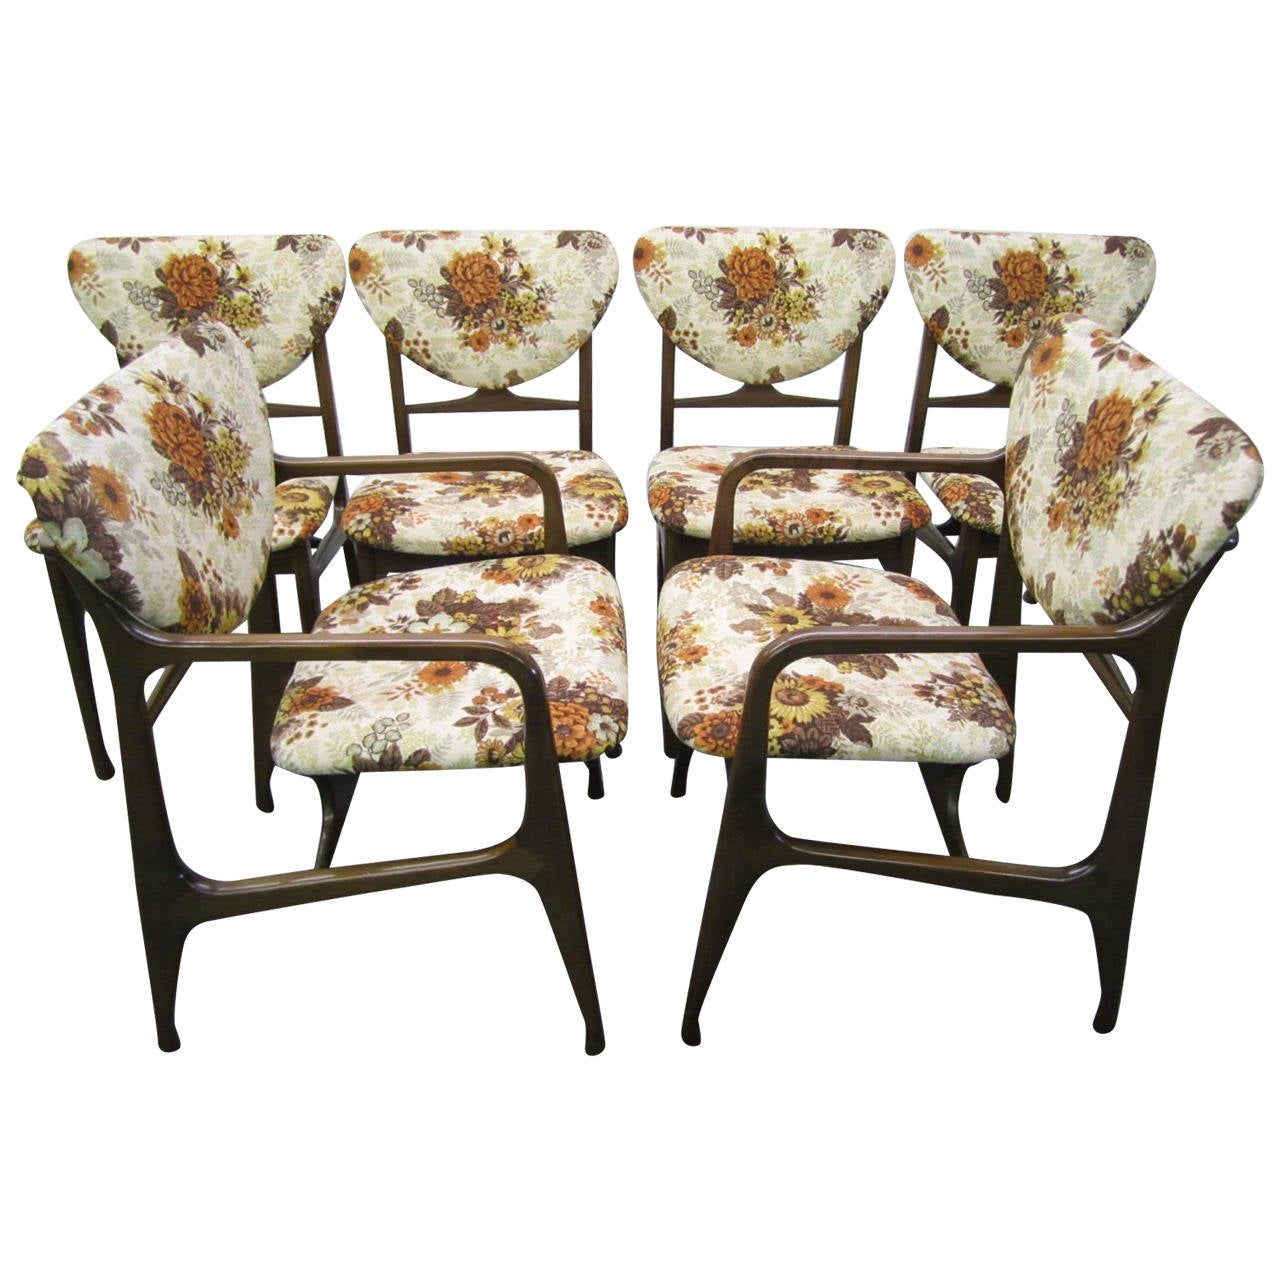 Excellent Set Of Six Dining Chairs Mid Century Modern